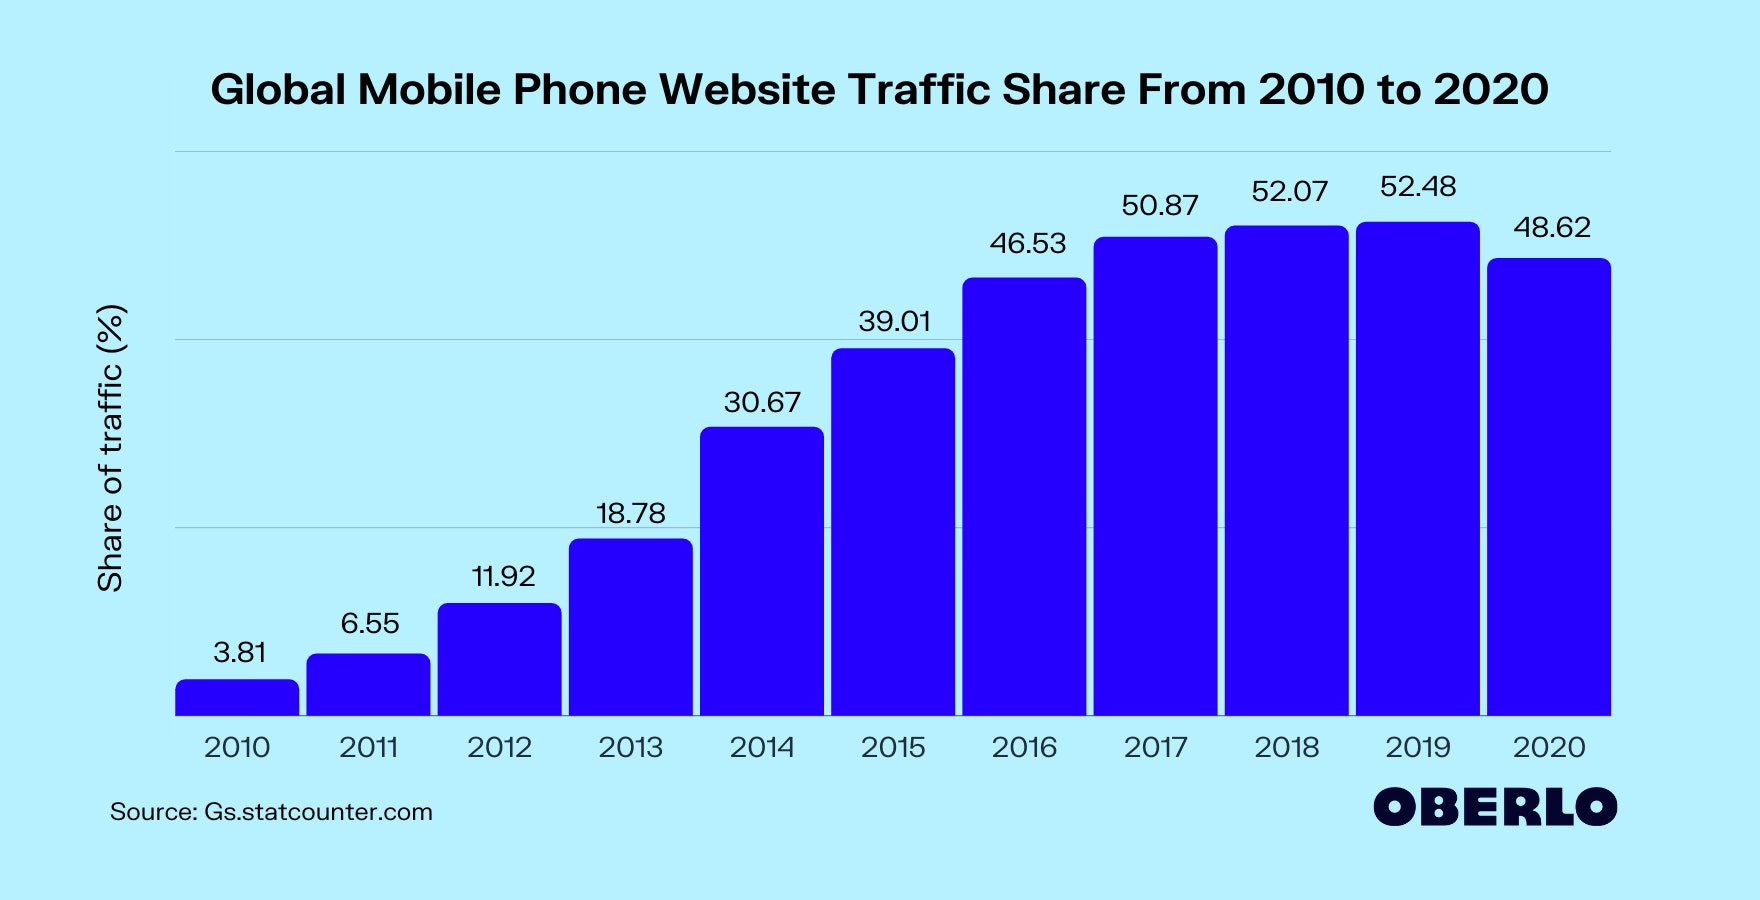 Global Mobile Phone Website Traffic Share From 2010 to 2020